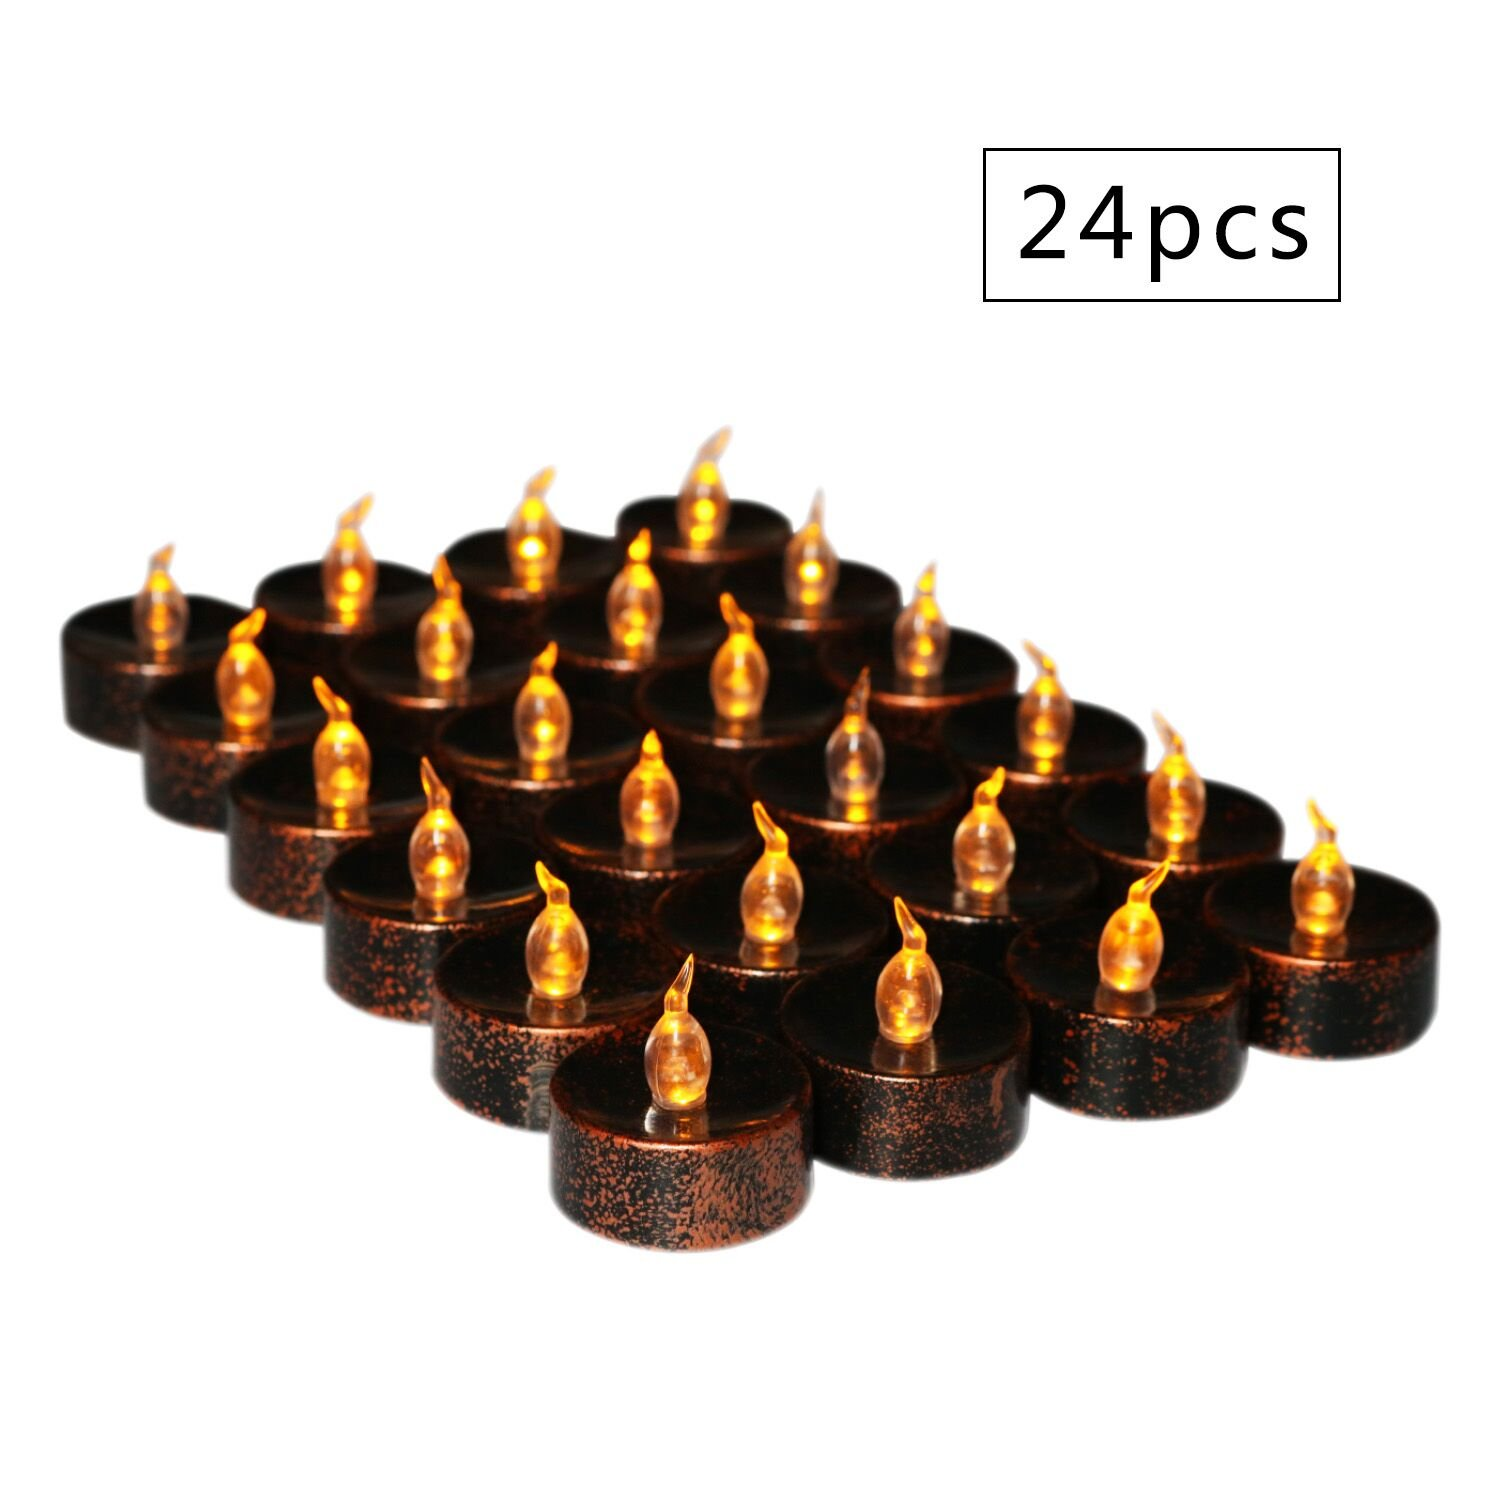 Freewander Flameless Tea Lights Electric Battery Fake Tealight Black Votive LED Candles for Halloween, Christmas Party, Table Decor, Amber Yellow Light Bulb, Pack of 24